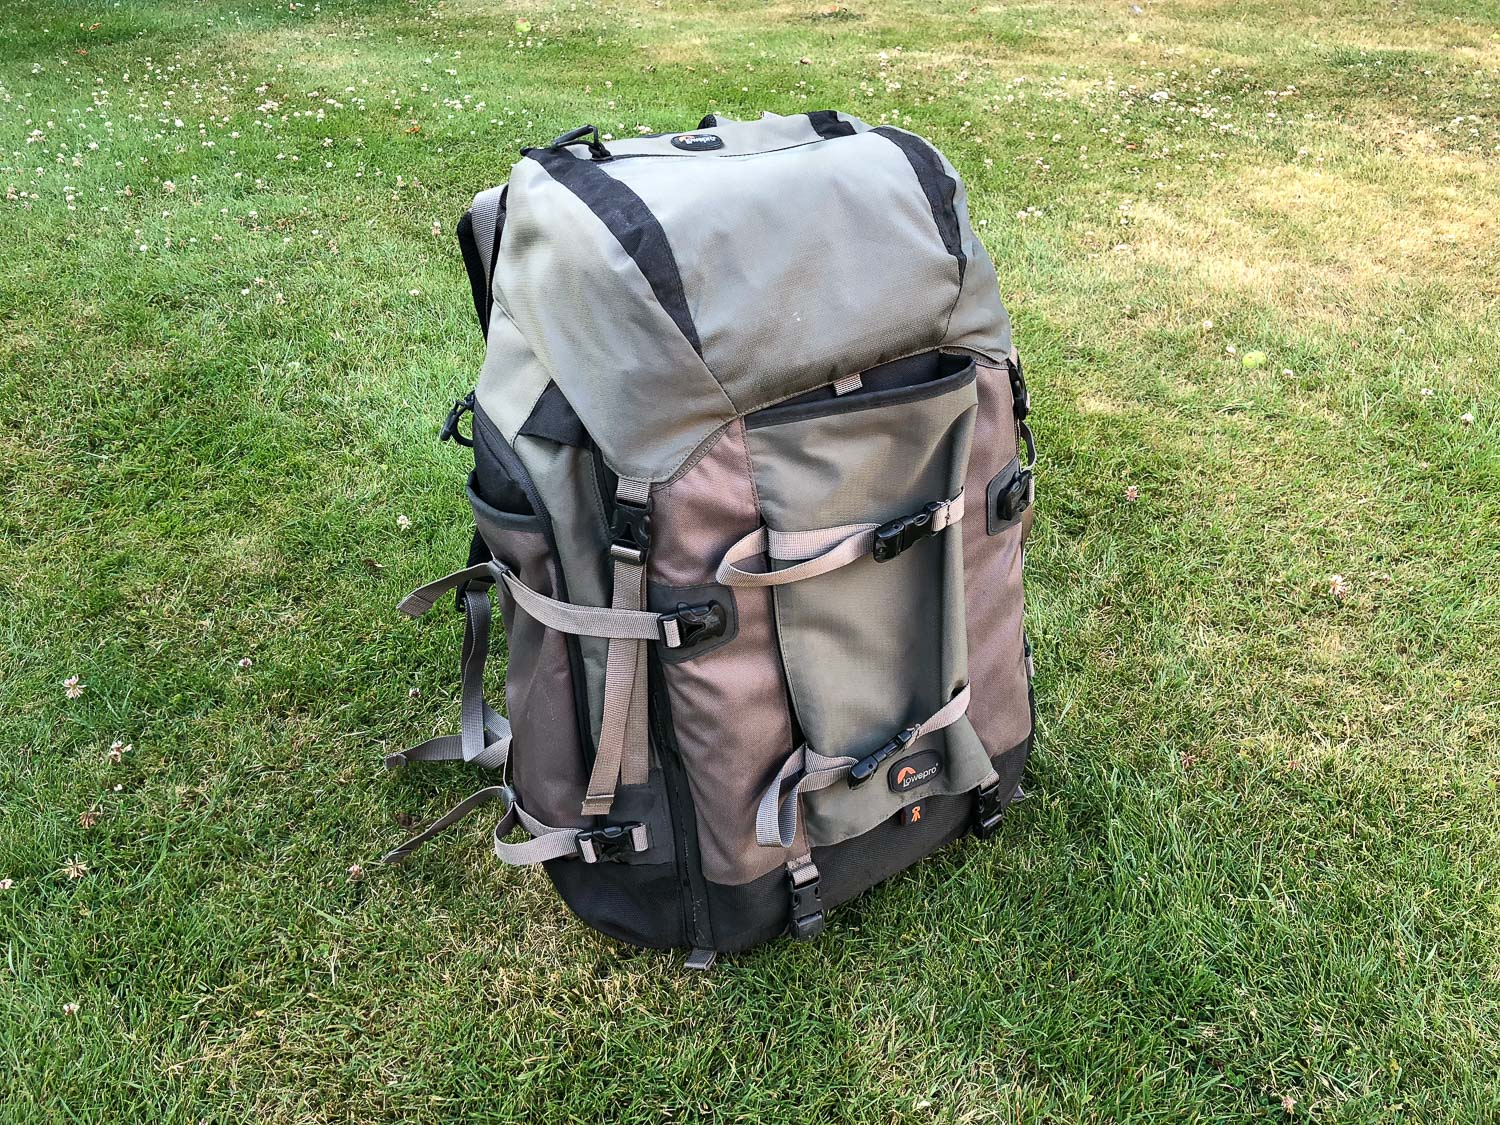 pro trekker LowePro bag - camera bags for travel photographers